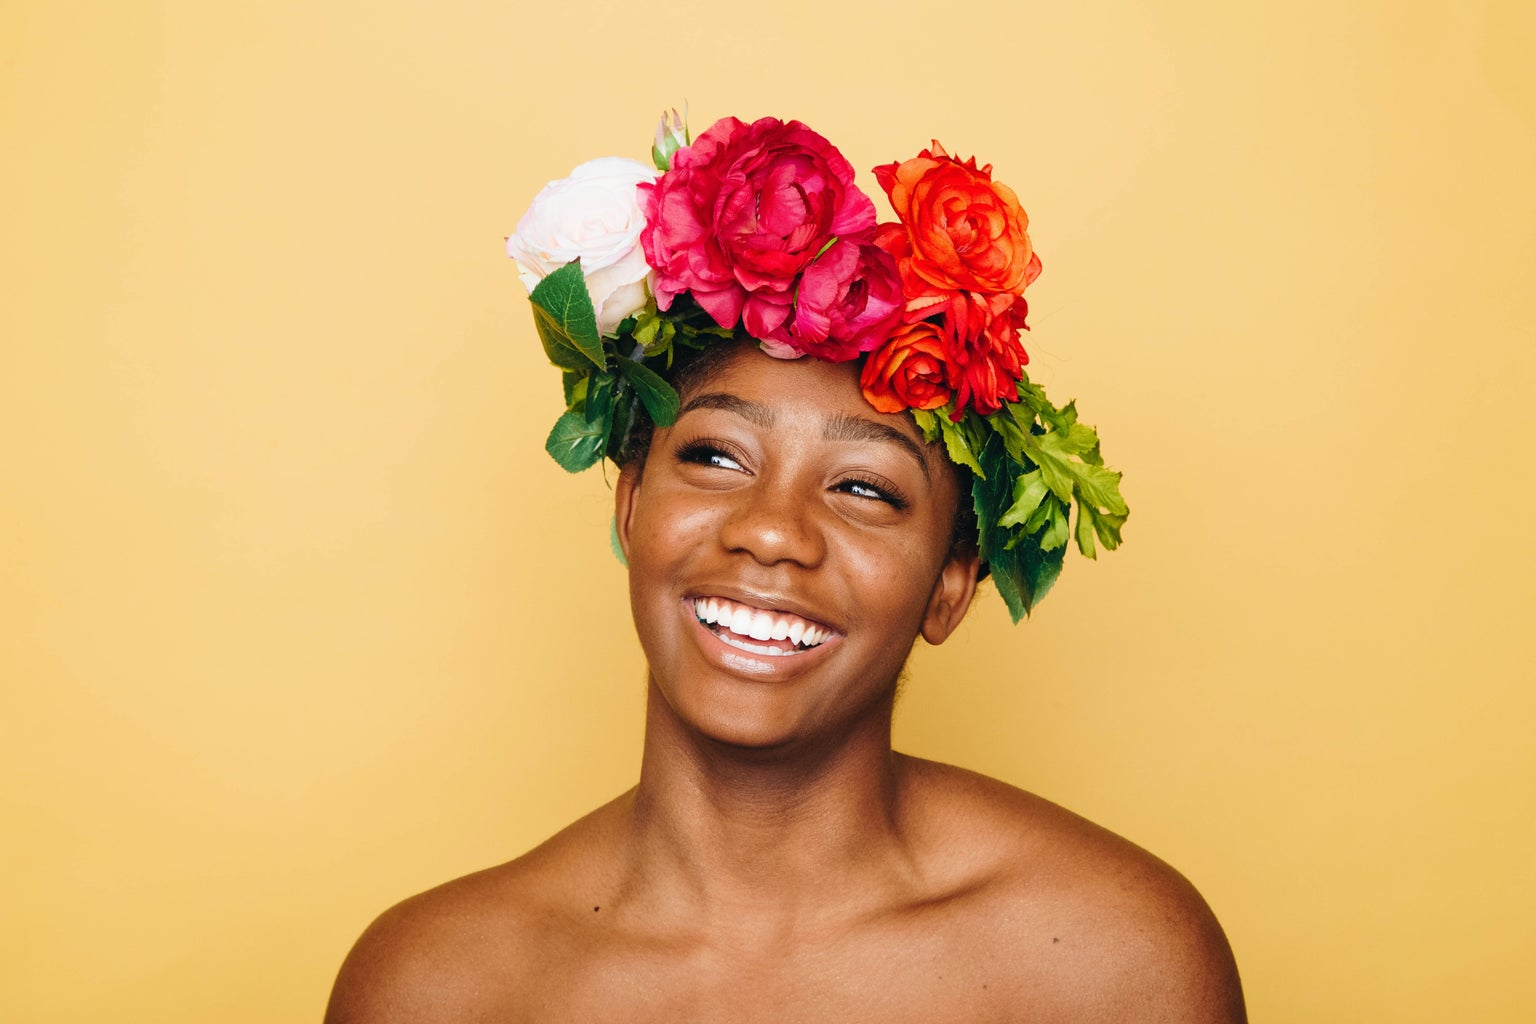 woman smiling with flower crown